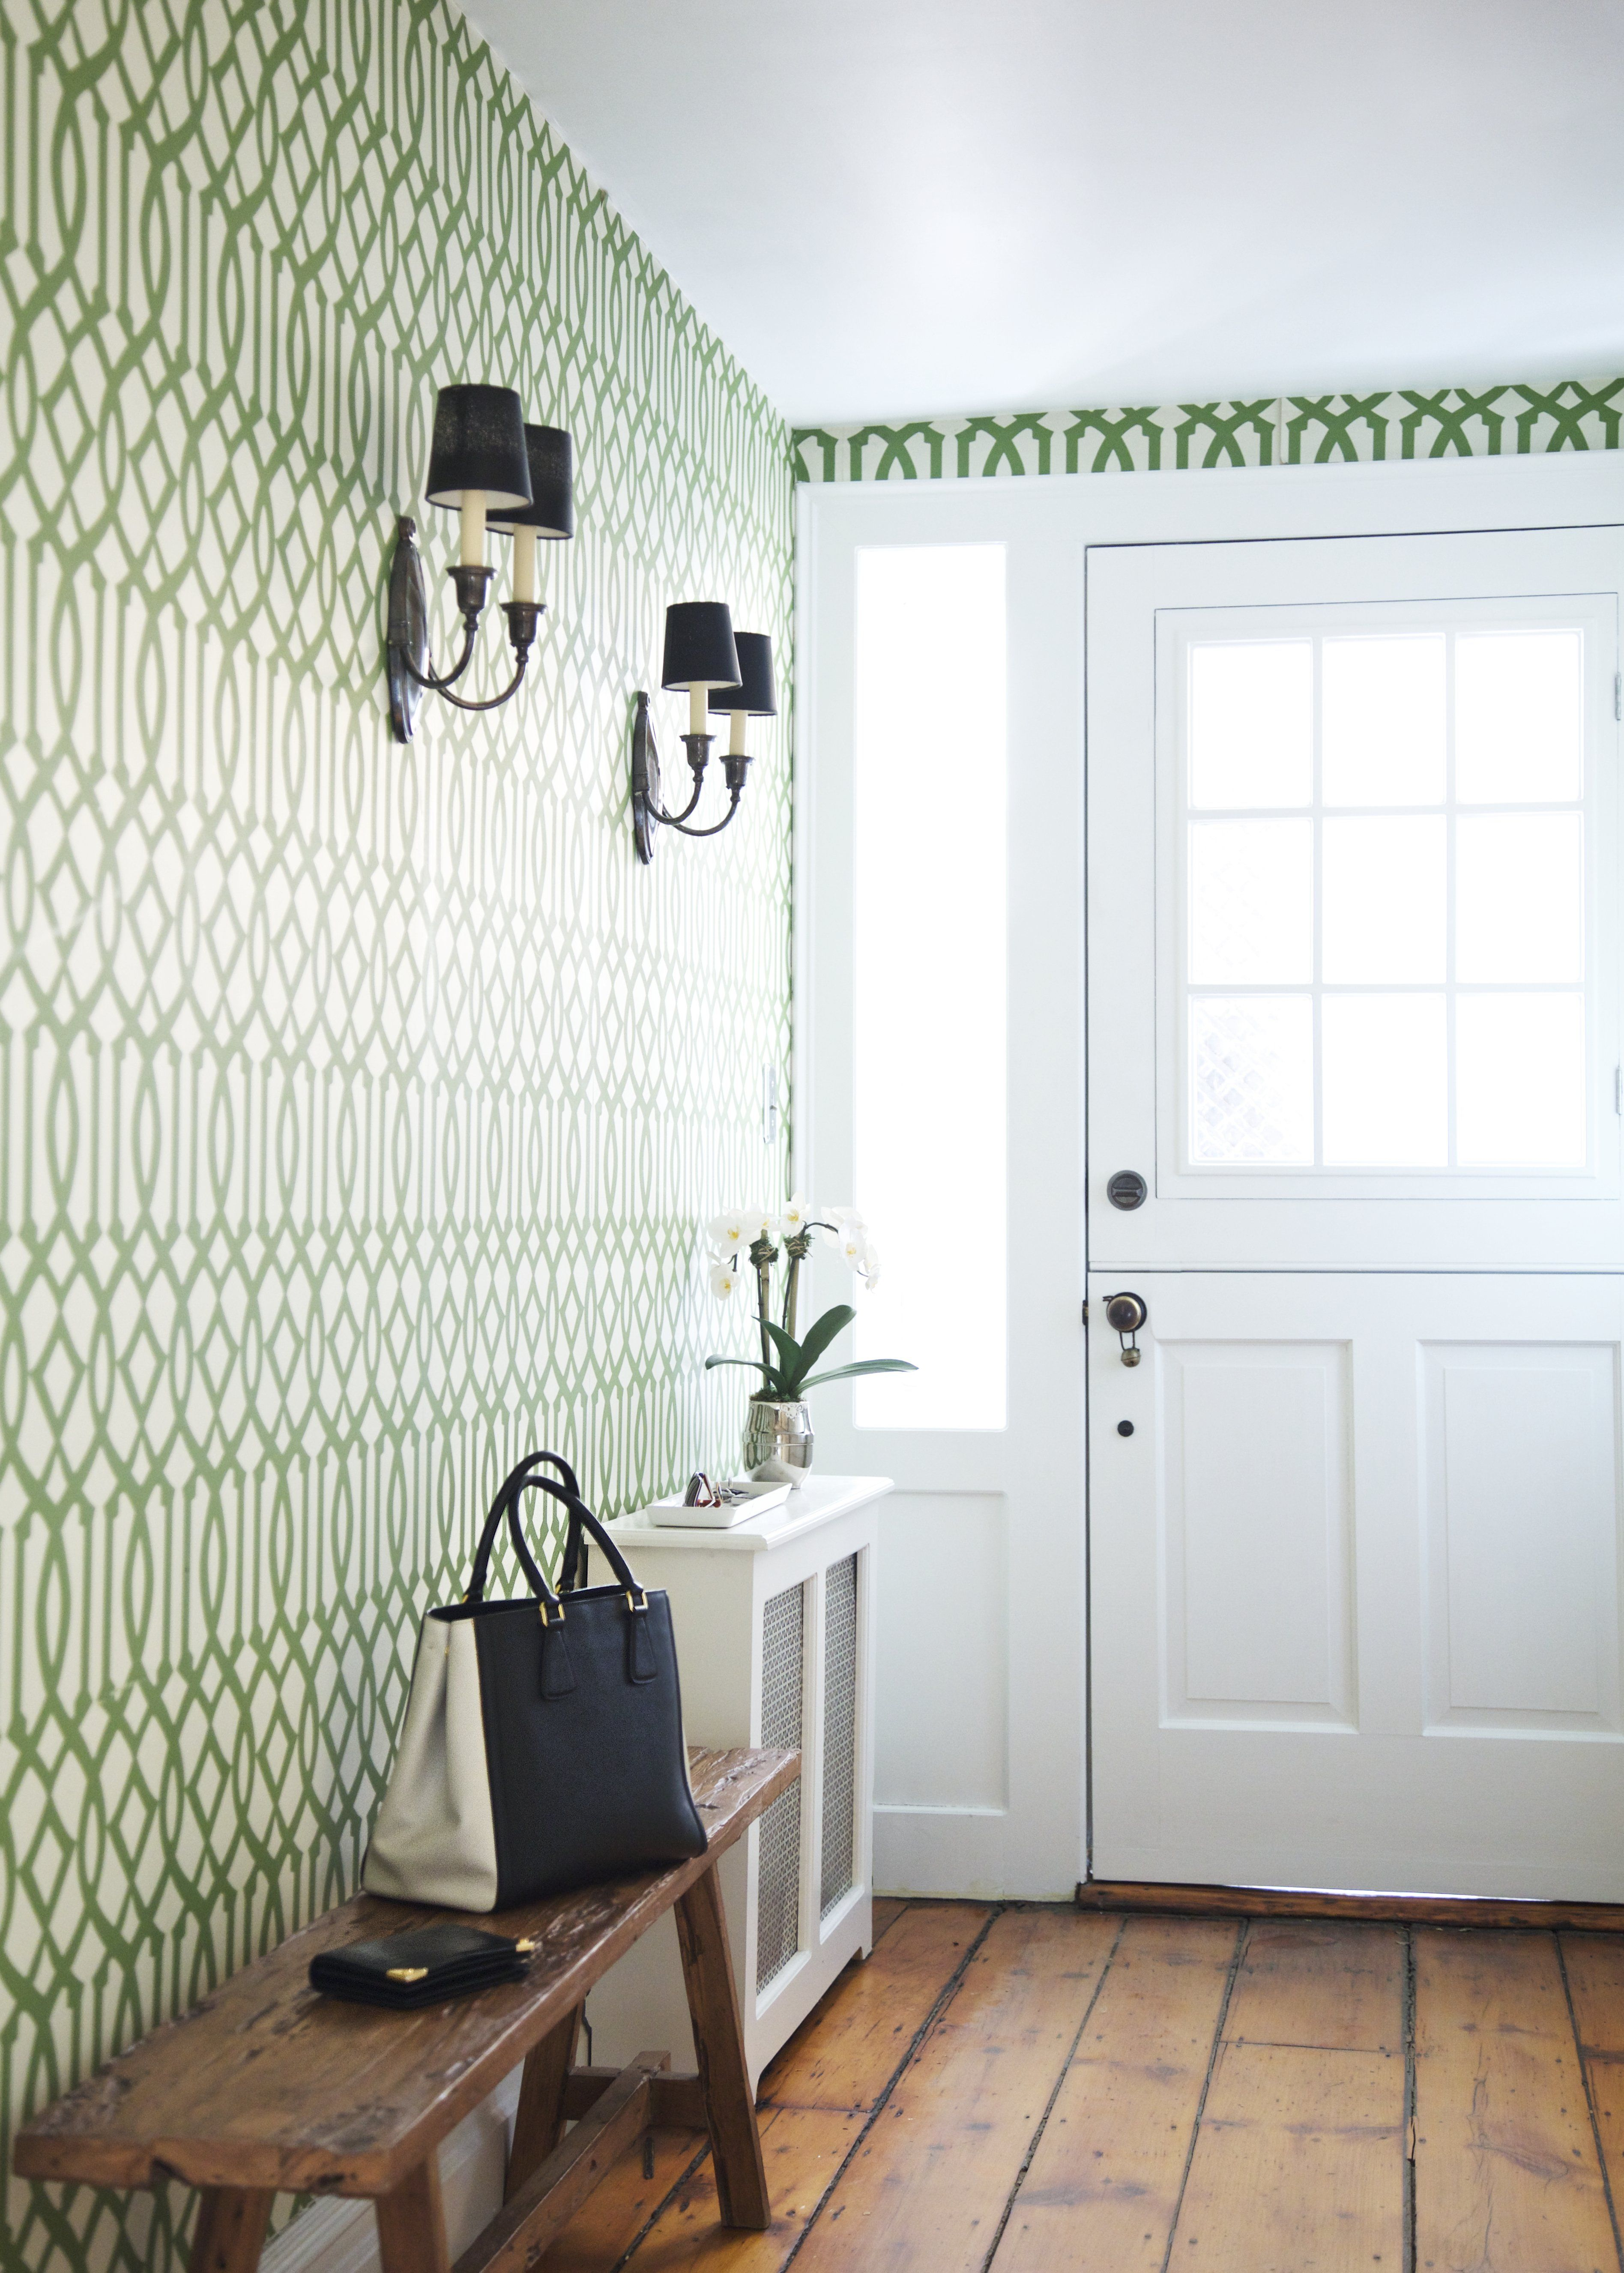 1950s hallway ideas   EyeCatching Entryways With One Simple Stylish Thing in Common